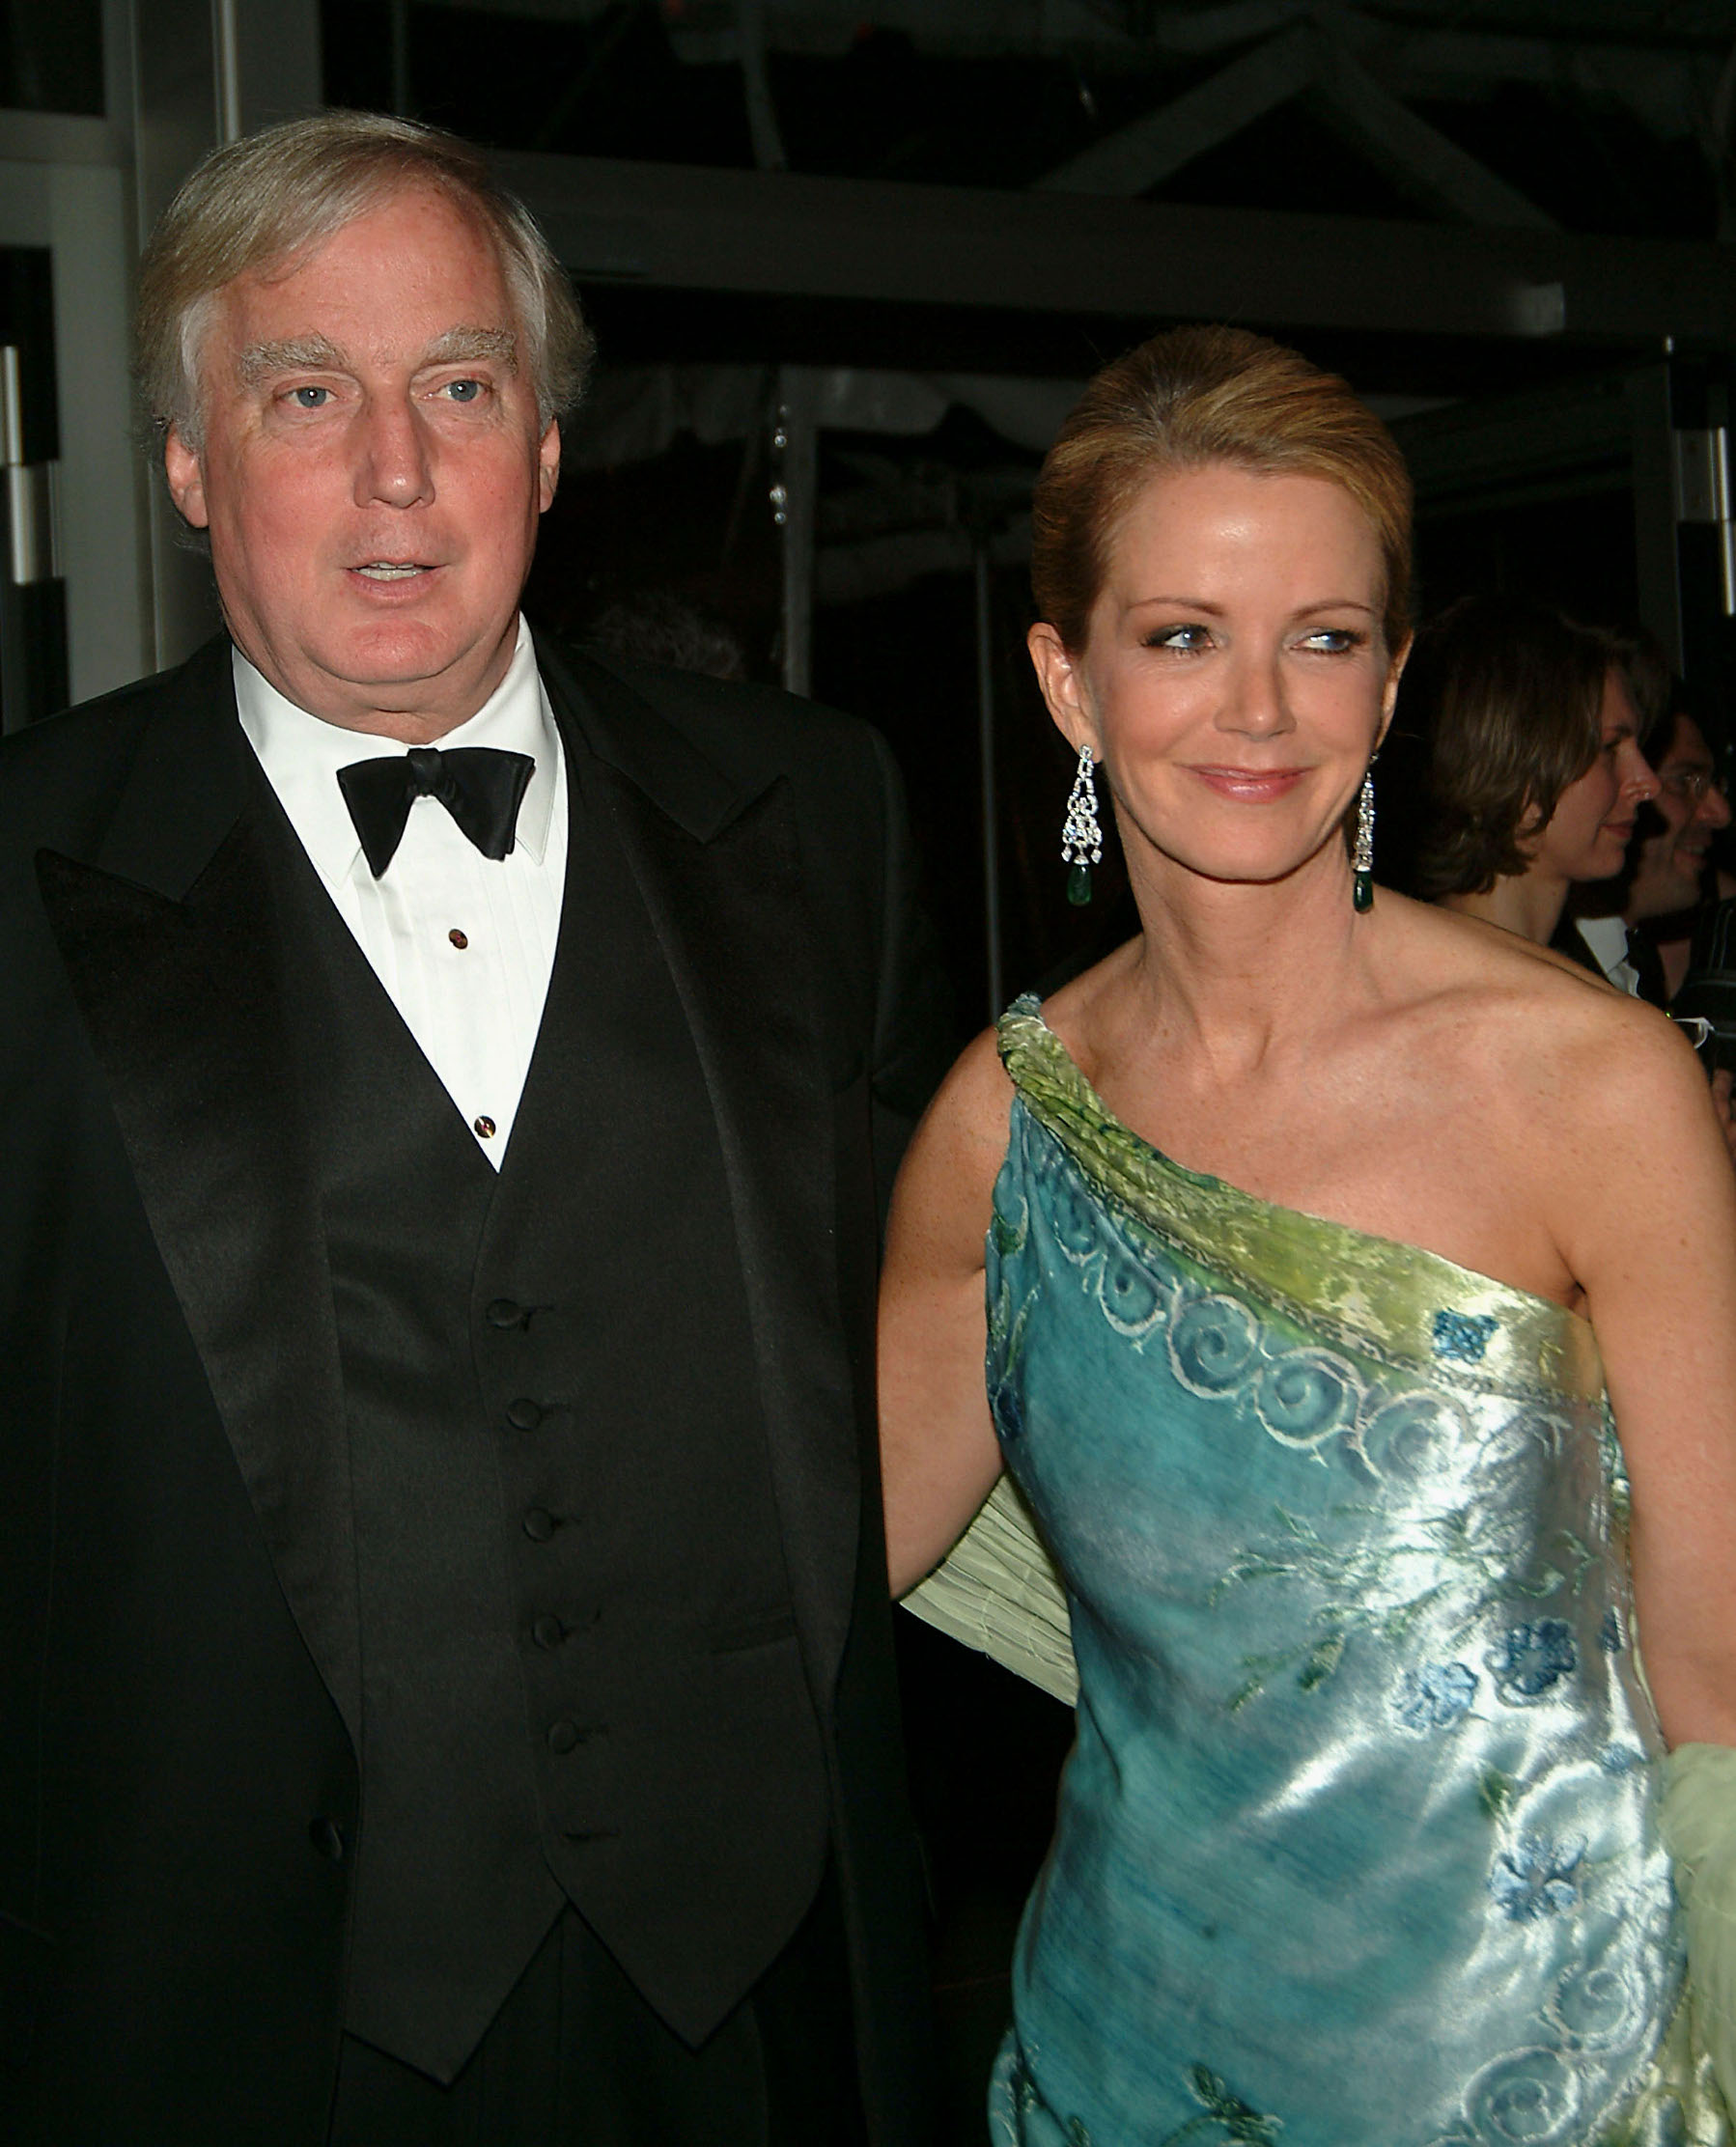 NEW YORK - MAY 23: Robert and Blaine Trump attend American Ballet Theatre (ABT) celebrating its 65th anniversary with the Annual Spring Gala at the Metropolitan Opera House on May 23, 2005 New York City, New York. (Photo by Desiree Navarro/Getty Images)